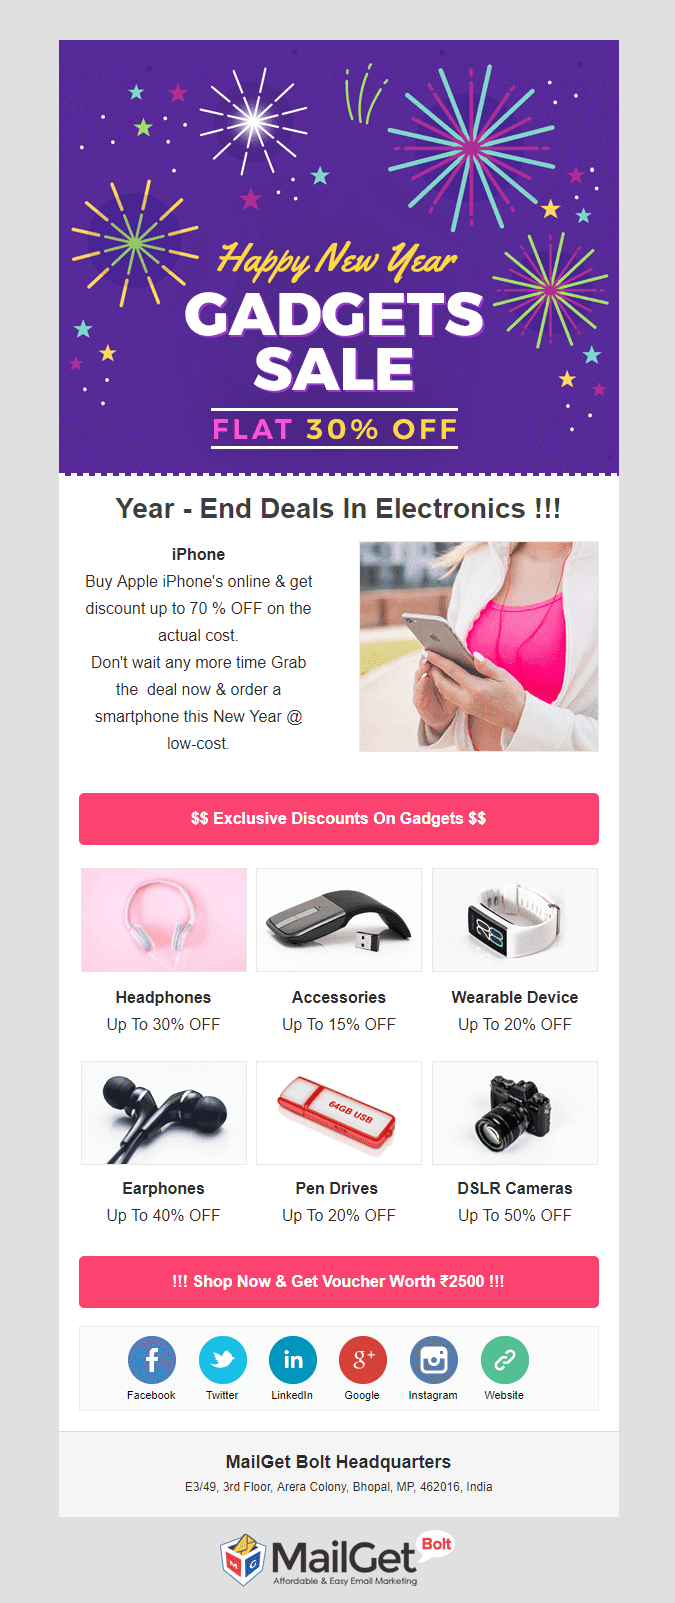 Gadgets-Sale-New-Year-email-templates1